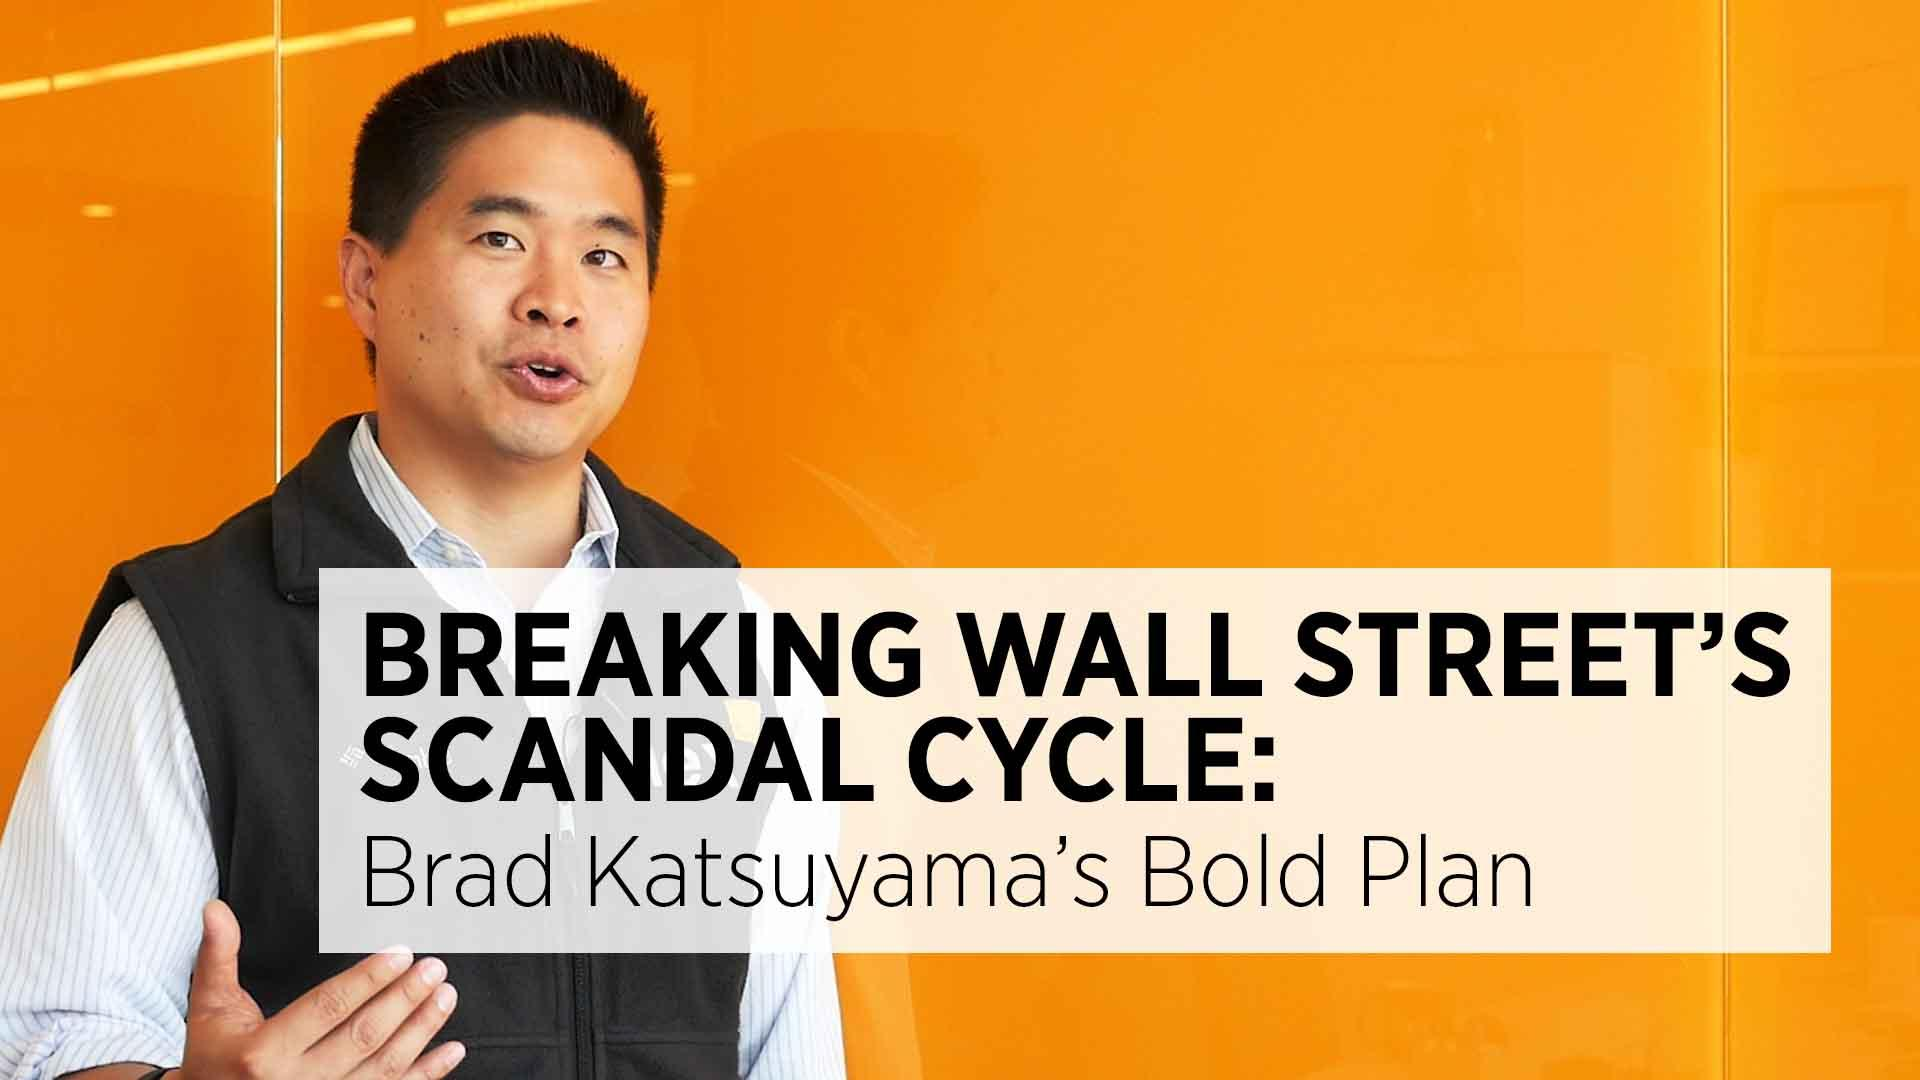 Breaking Wall Street's Scandal Cycle: Brad Katsuyama's Bold Plan